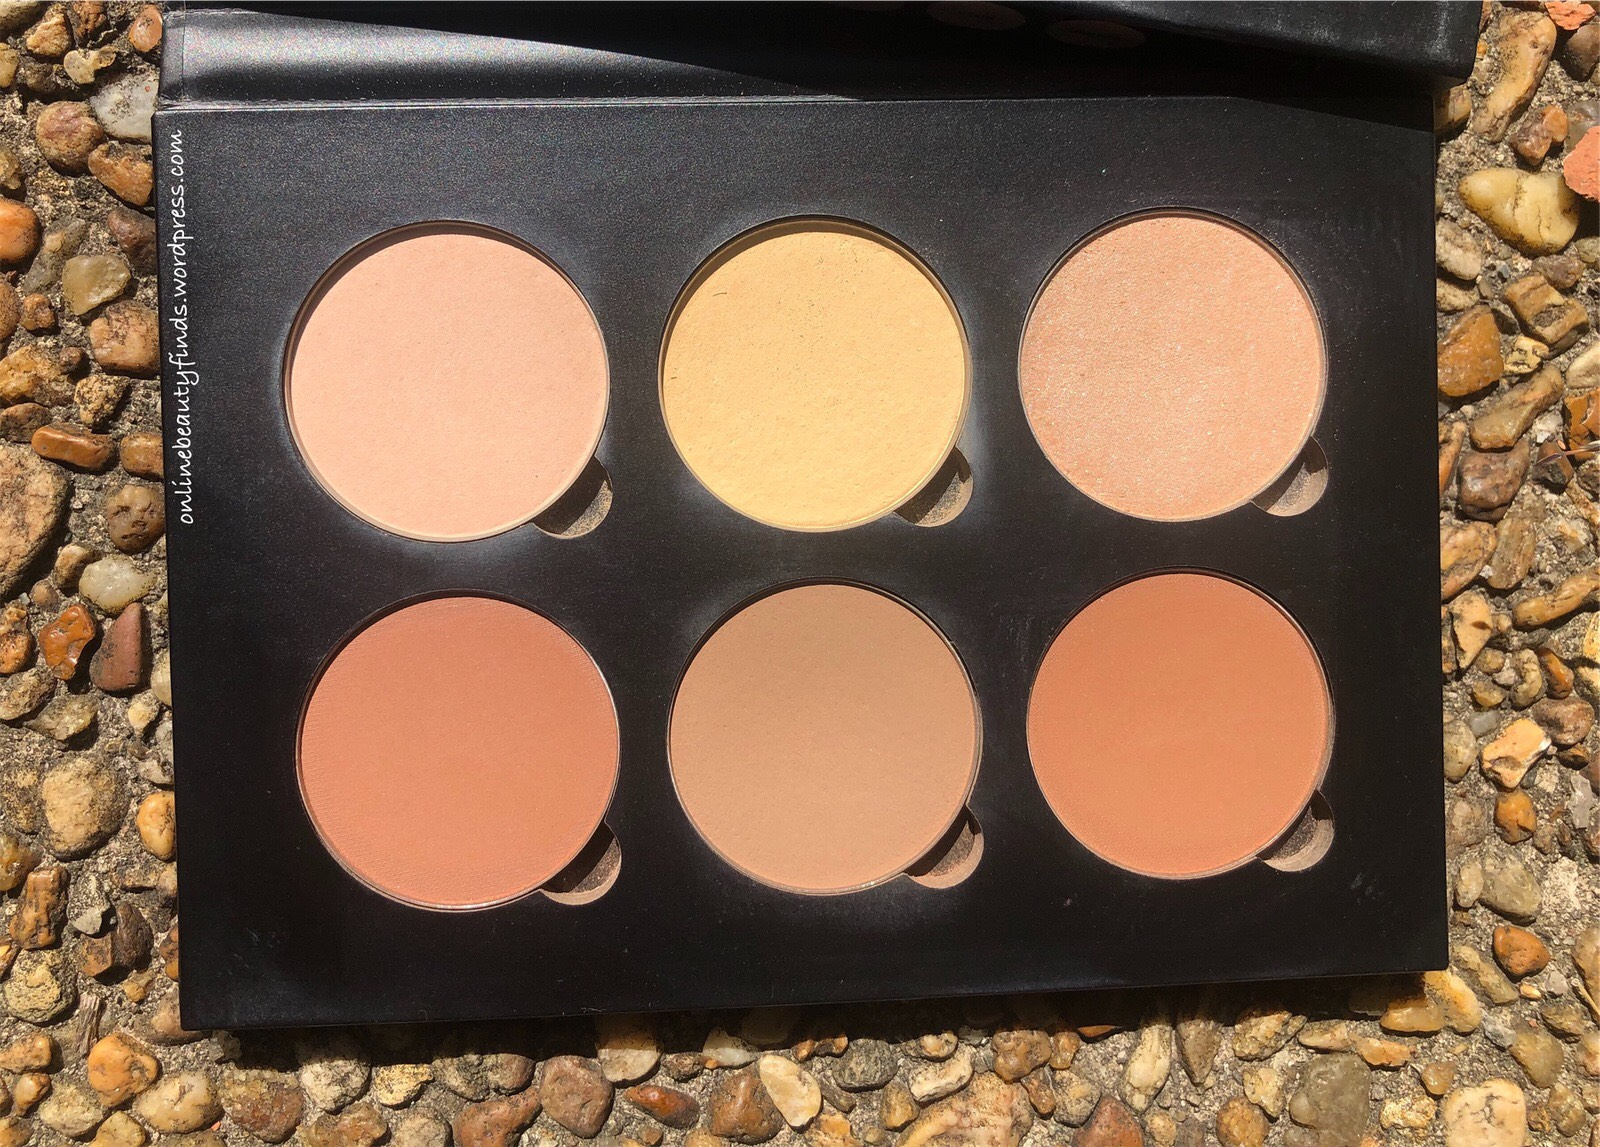 ABH Contour Kit Light to Medium